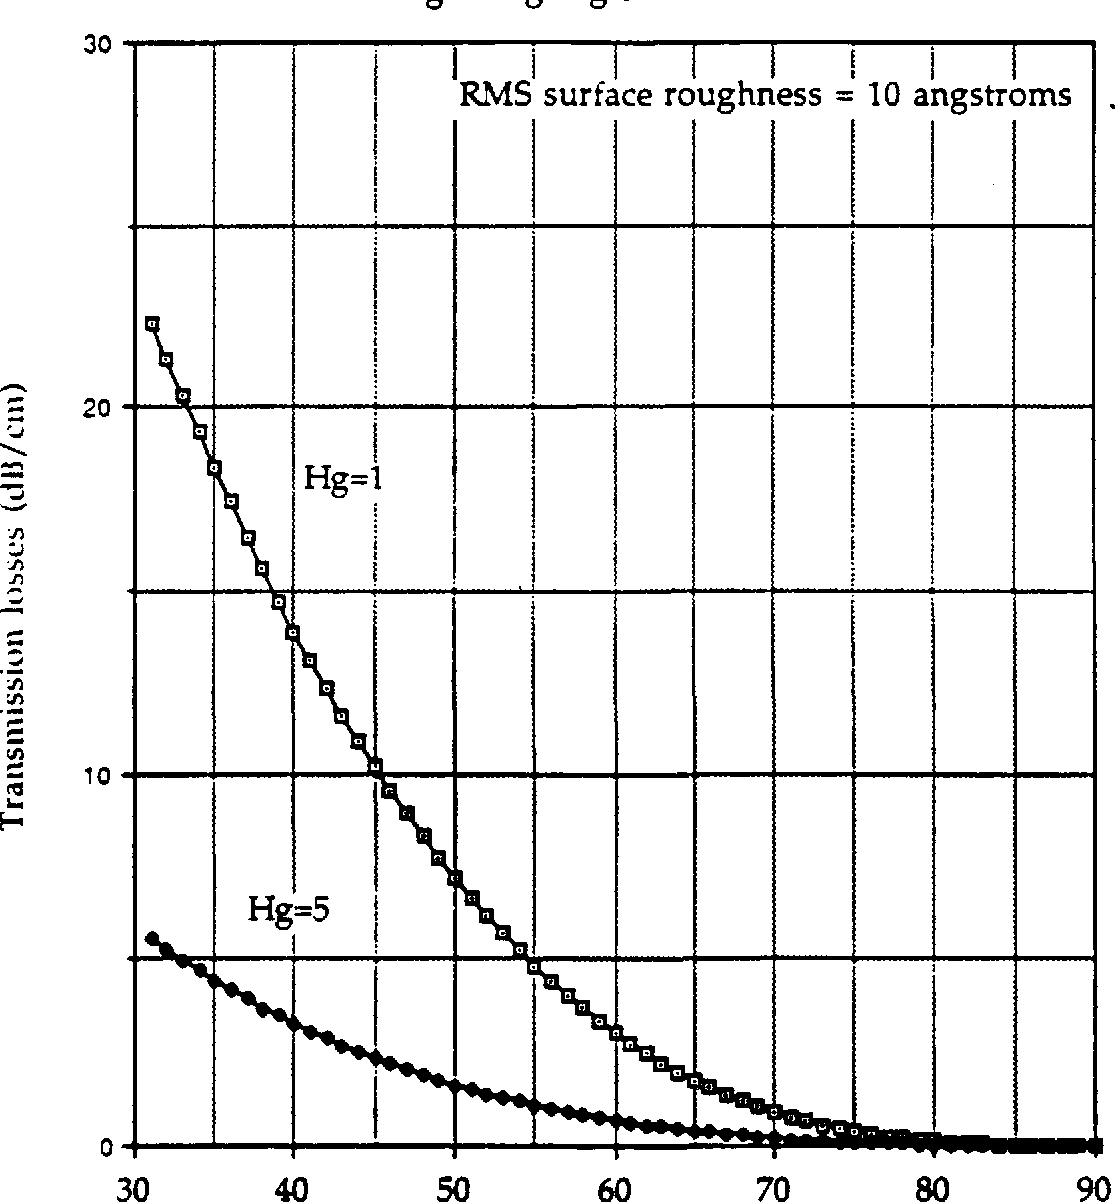 Figure 3.15 Transmission losses versus guiding angle.